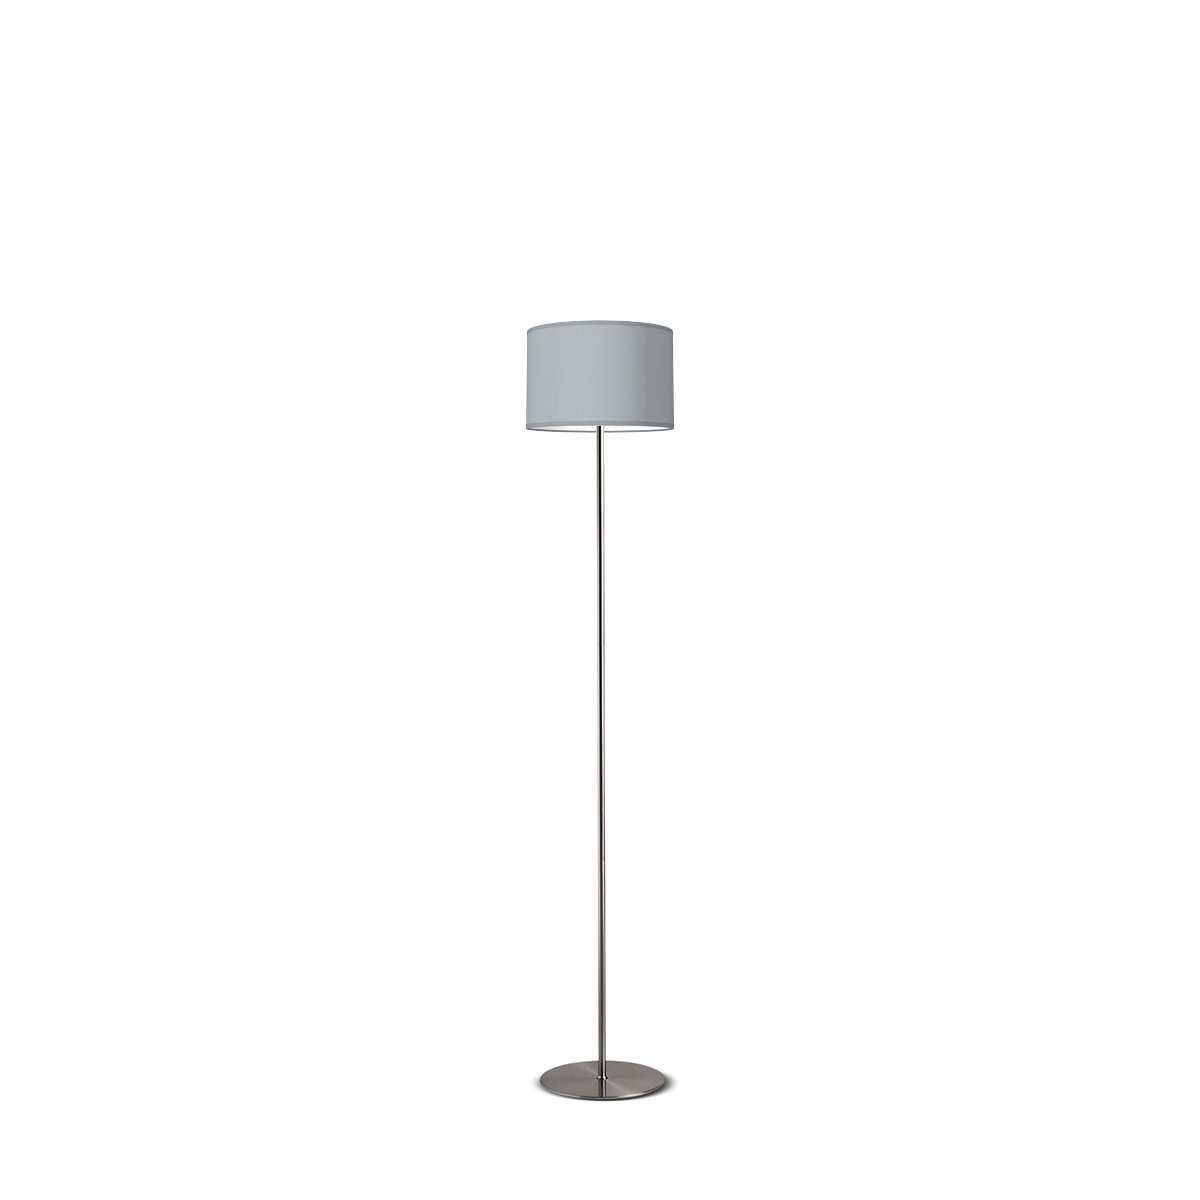 HOME SWEET HOME vloerlamp lift bling Ø 30 cm - Light grey